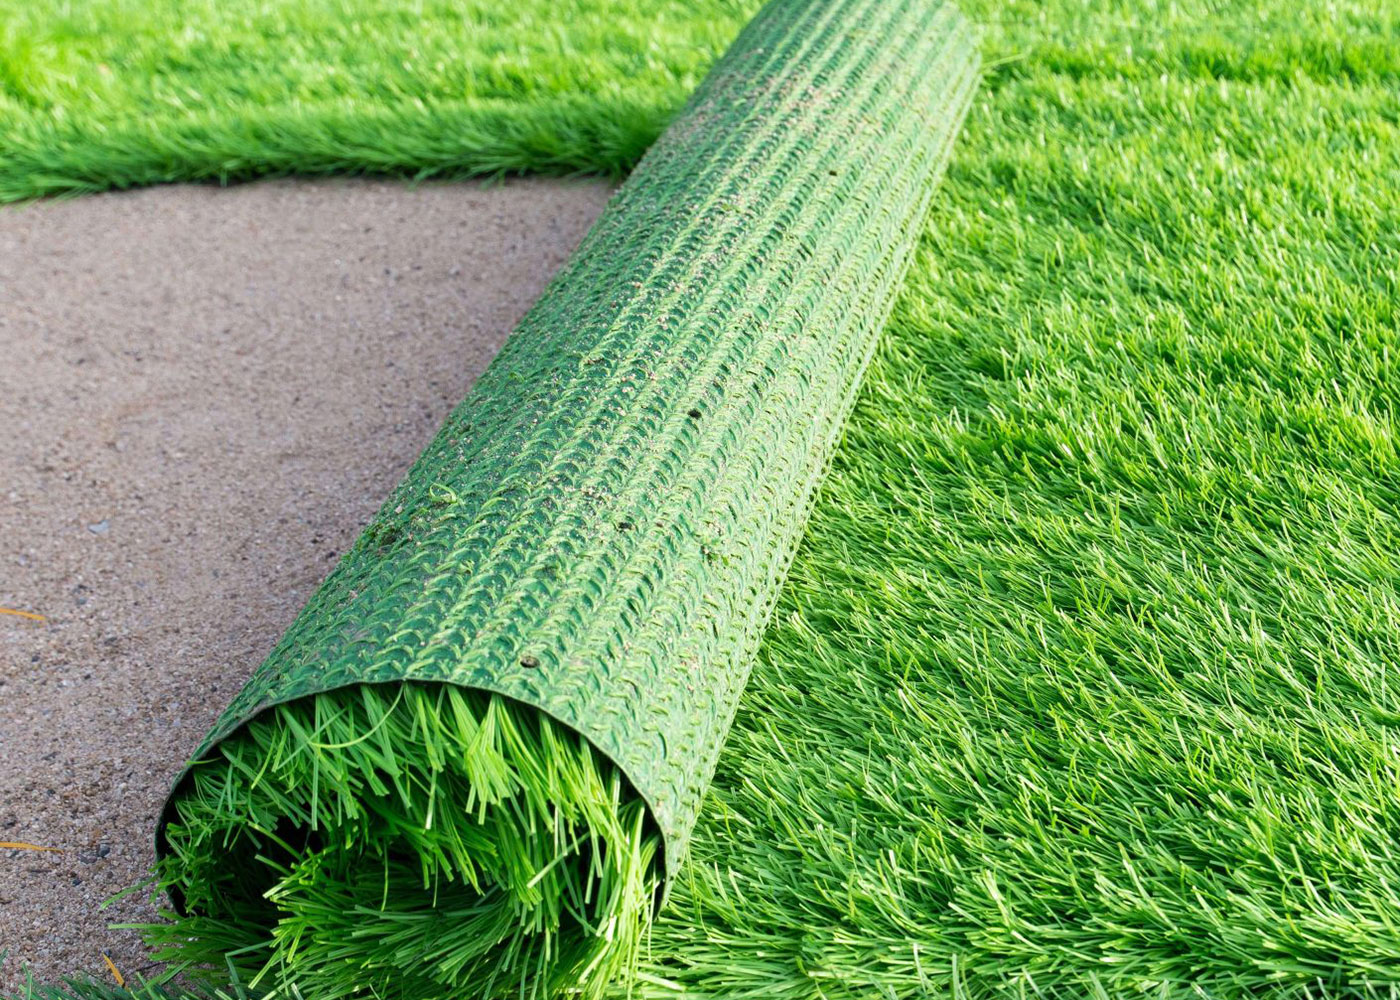 10 Answers to Your Questions About Artificial Grass for Dogs